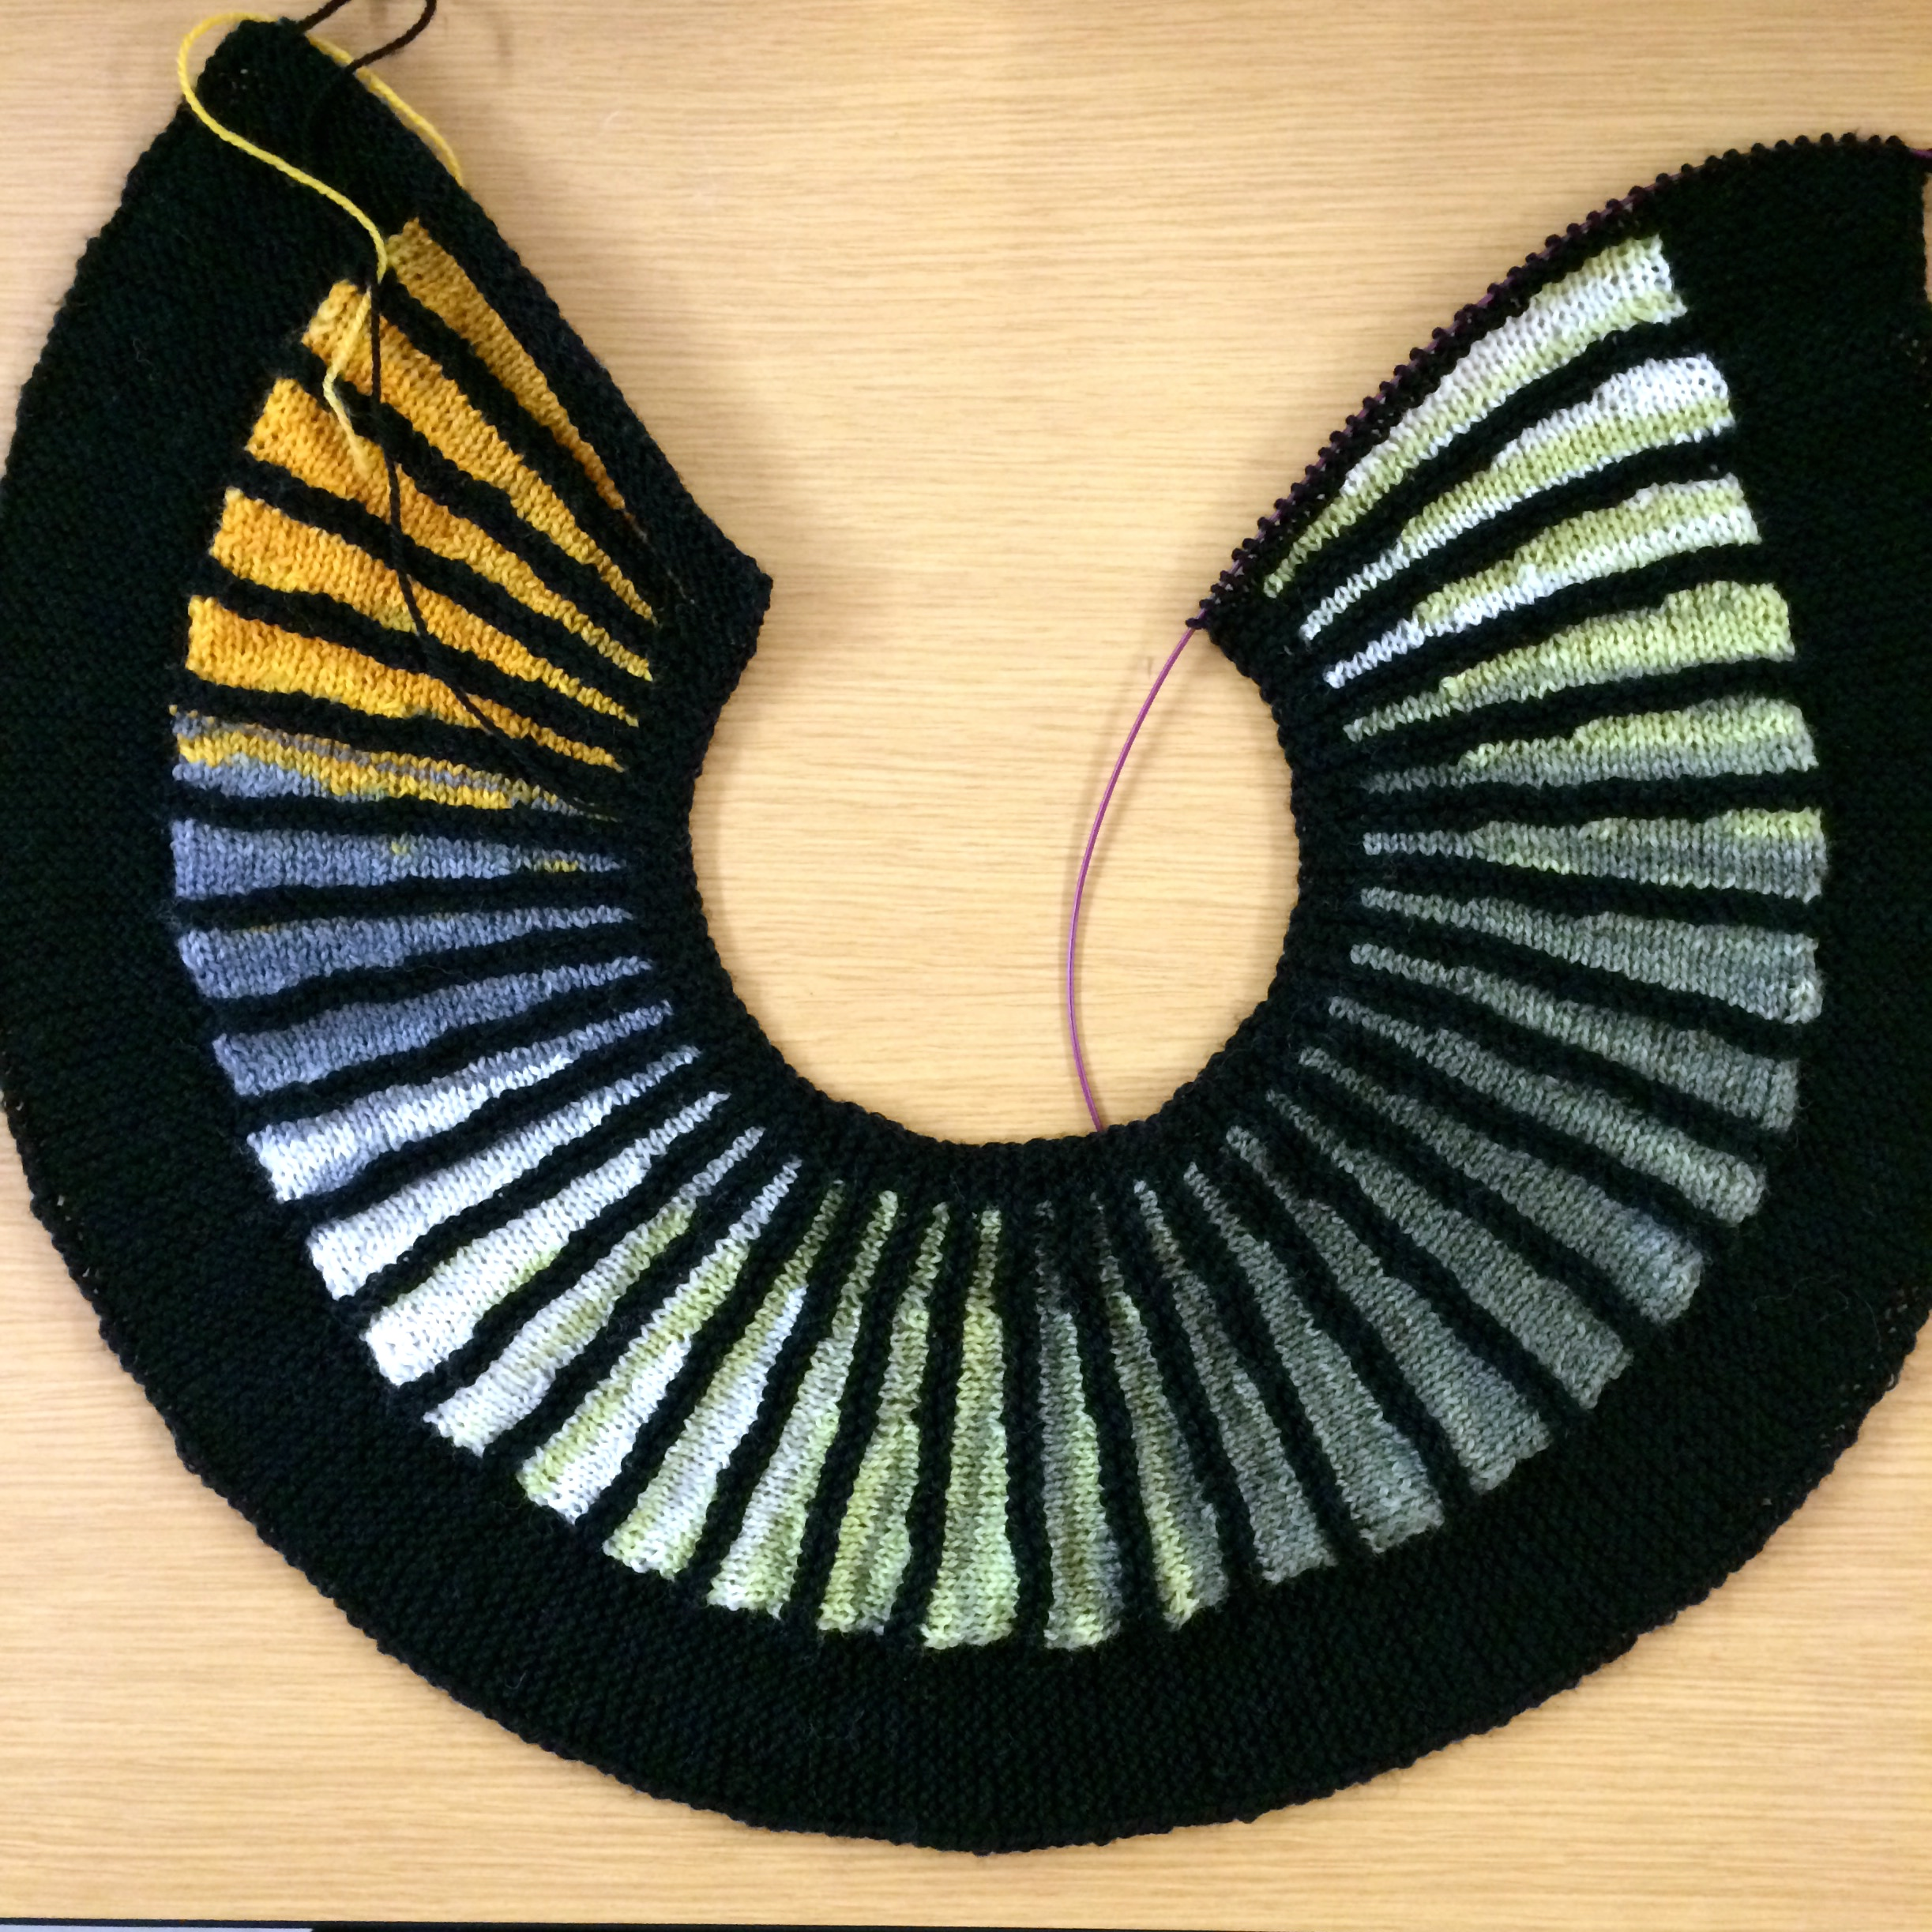 Spectra by Stephen West with Liberty Wool Light yarn